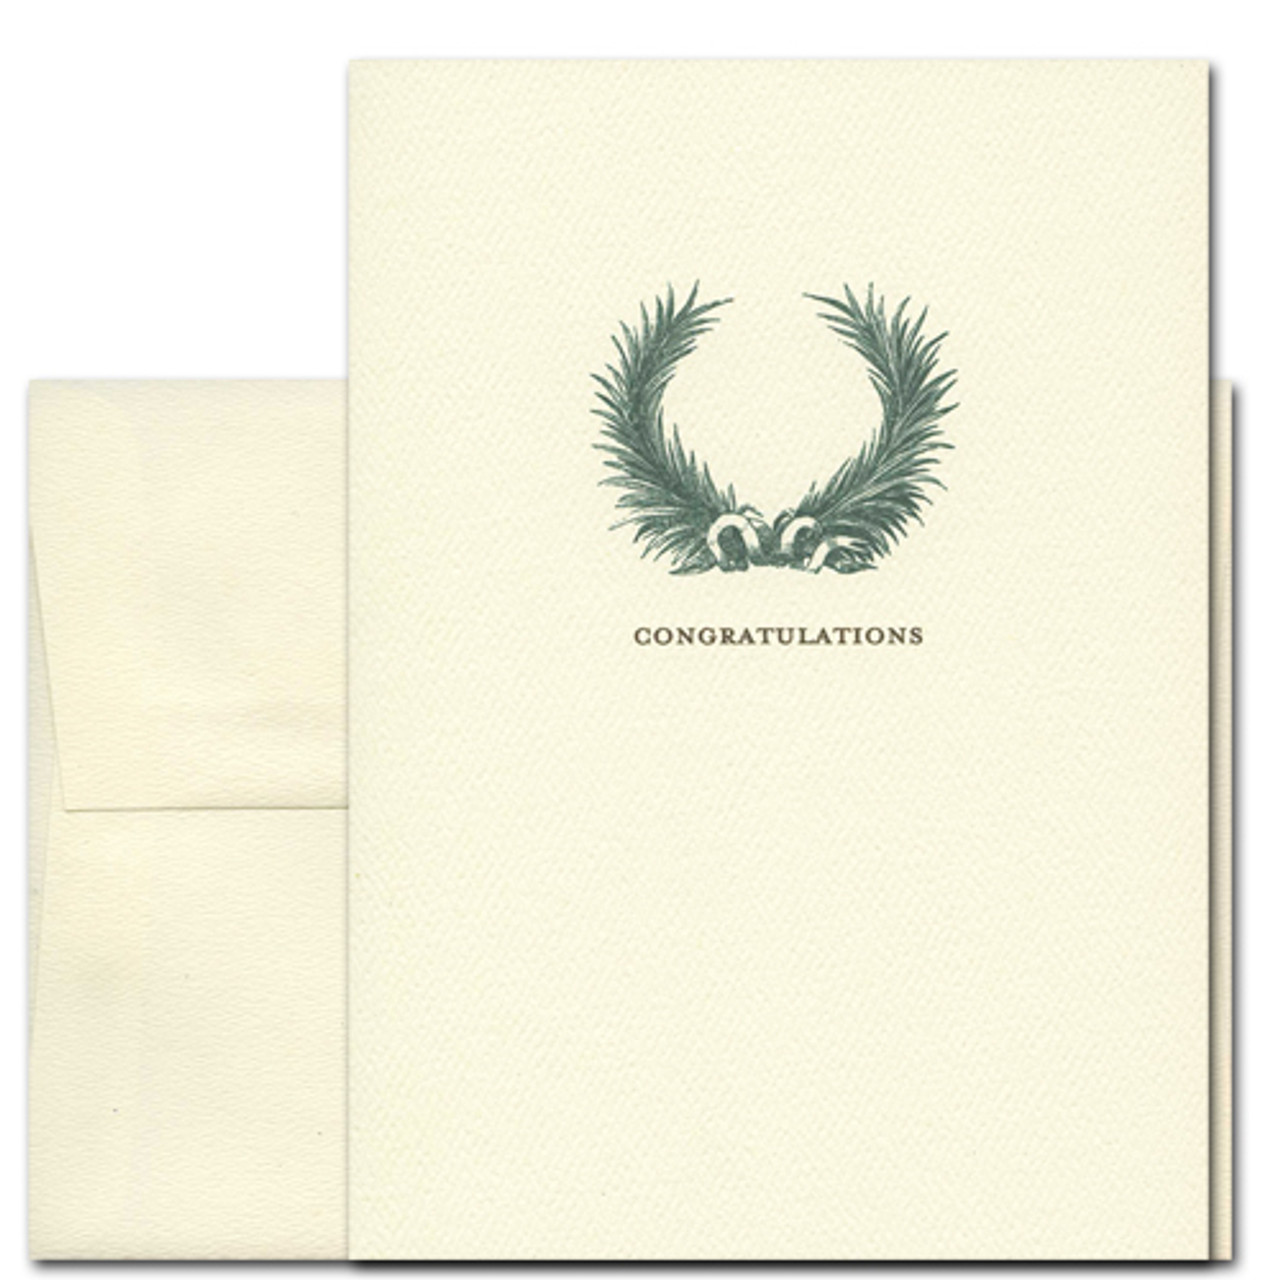 "Congratulations Card with a Laurel Wreath Design over the word ""Congratulations"""